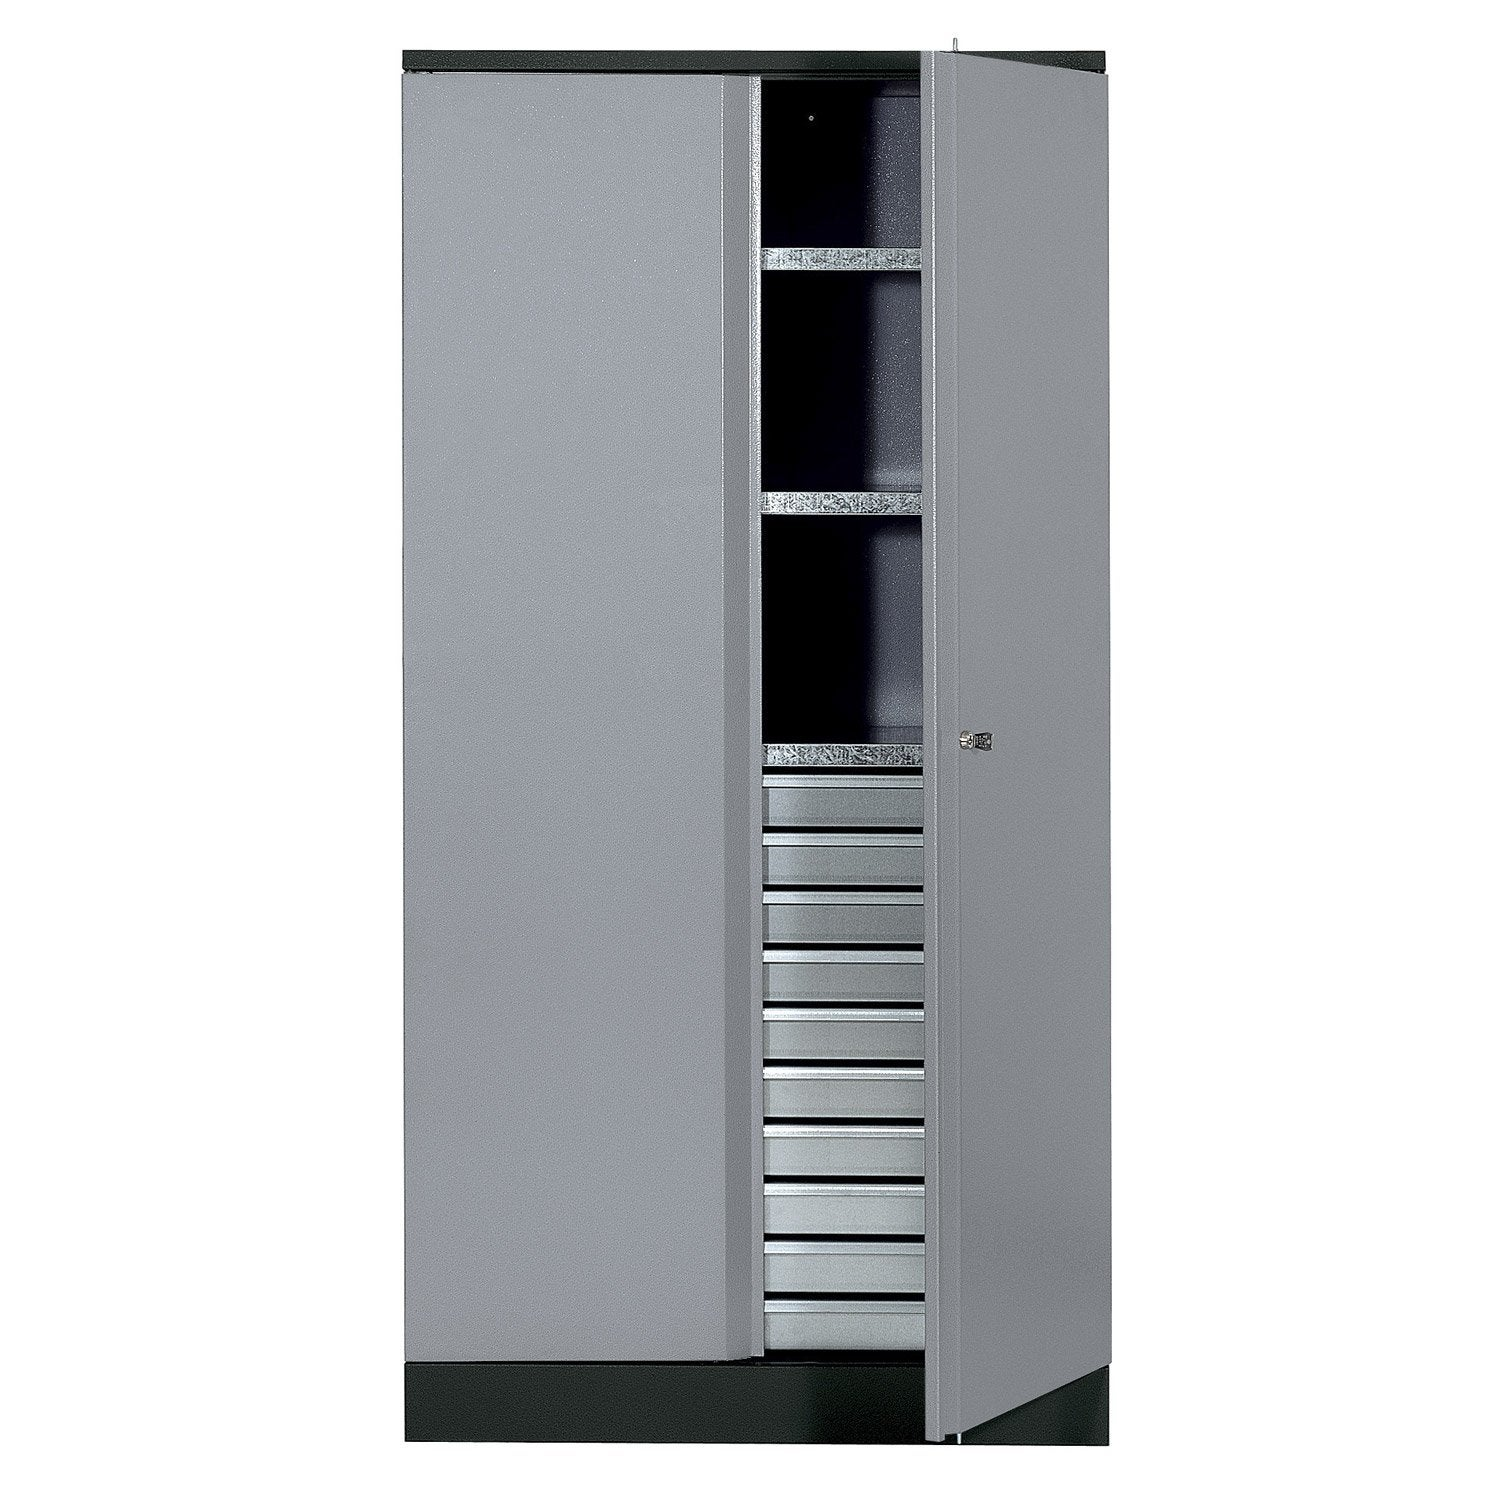 armoire de rangement en m tal gris clair kupper 91 cm 1 porte 10 tiroirs leroy merlin. Black Bedroom Furniture Sets. Home Design Ideas